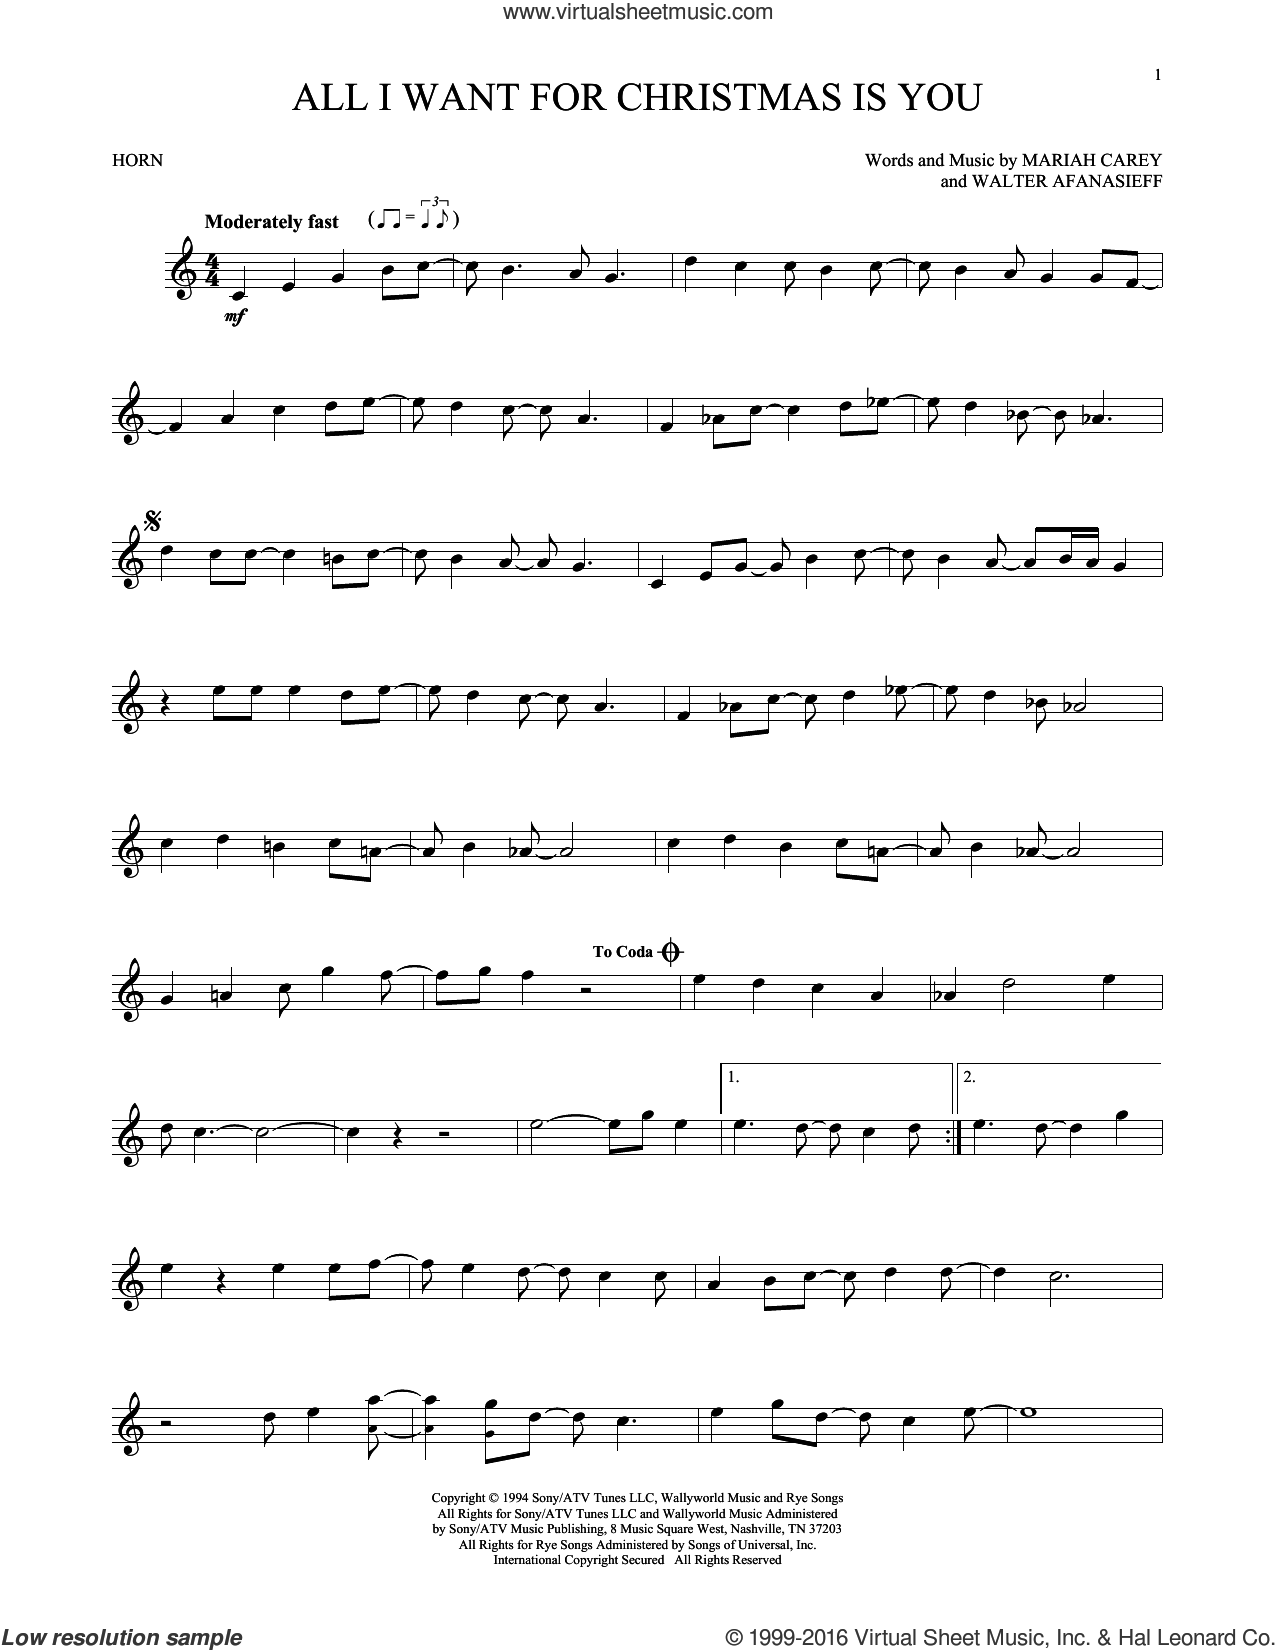 All I Want For Christmas Is You sheet music for horn solo by Mariah Carey and Walter Afanasieff, intermediate skill level